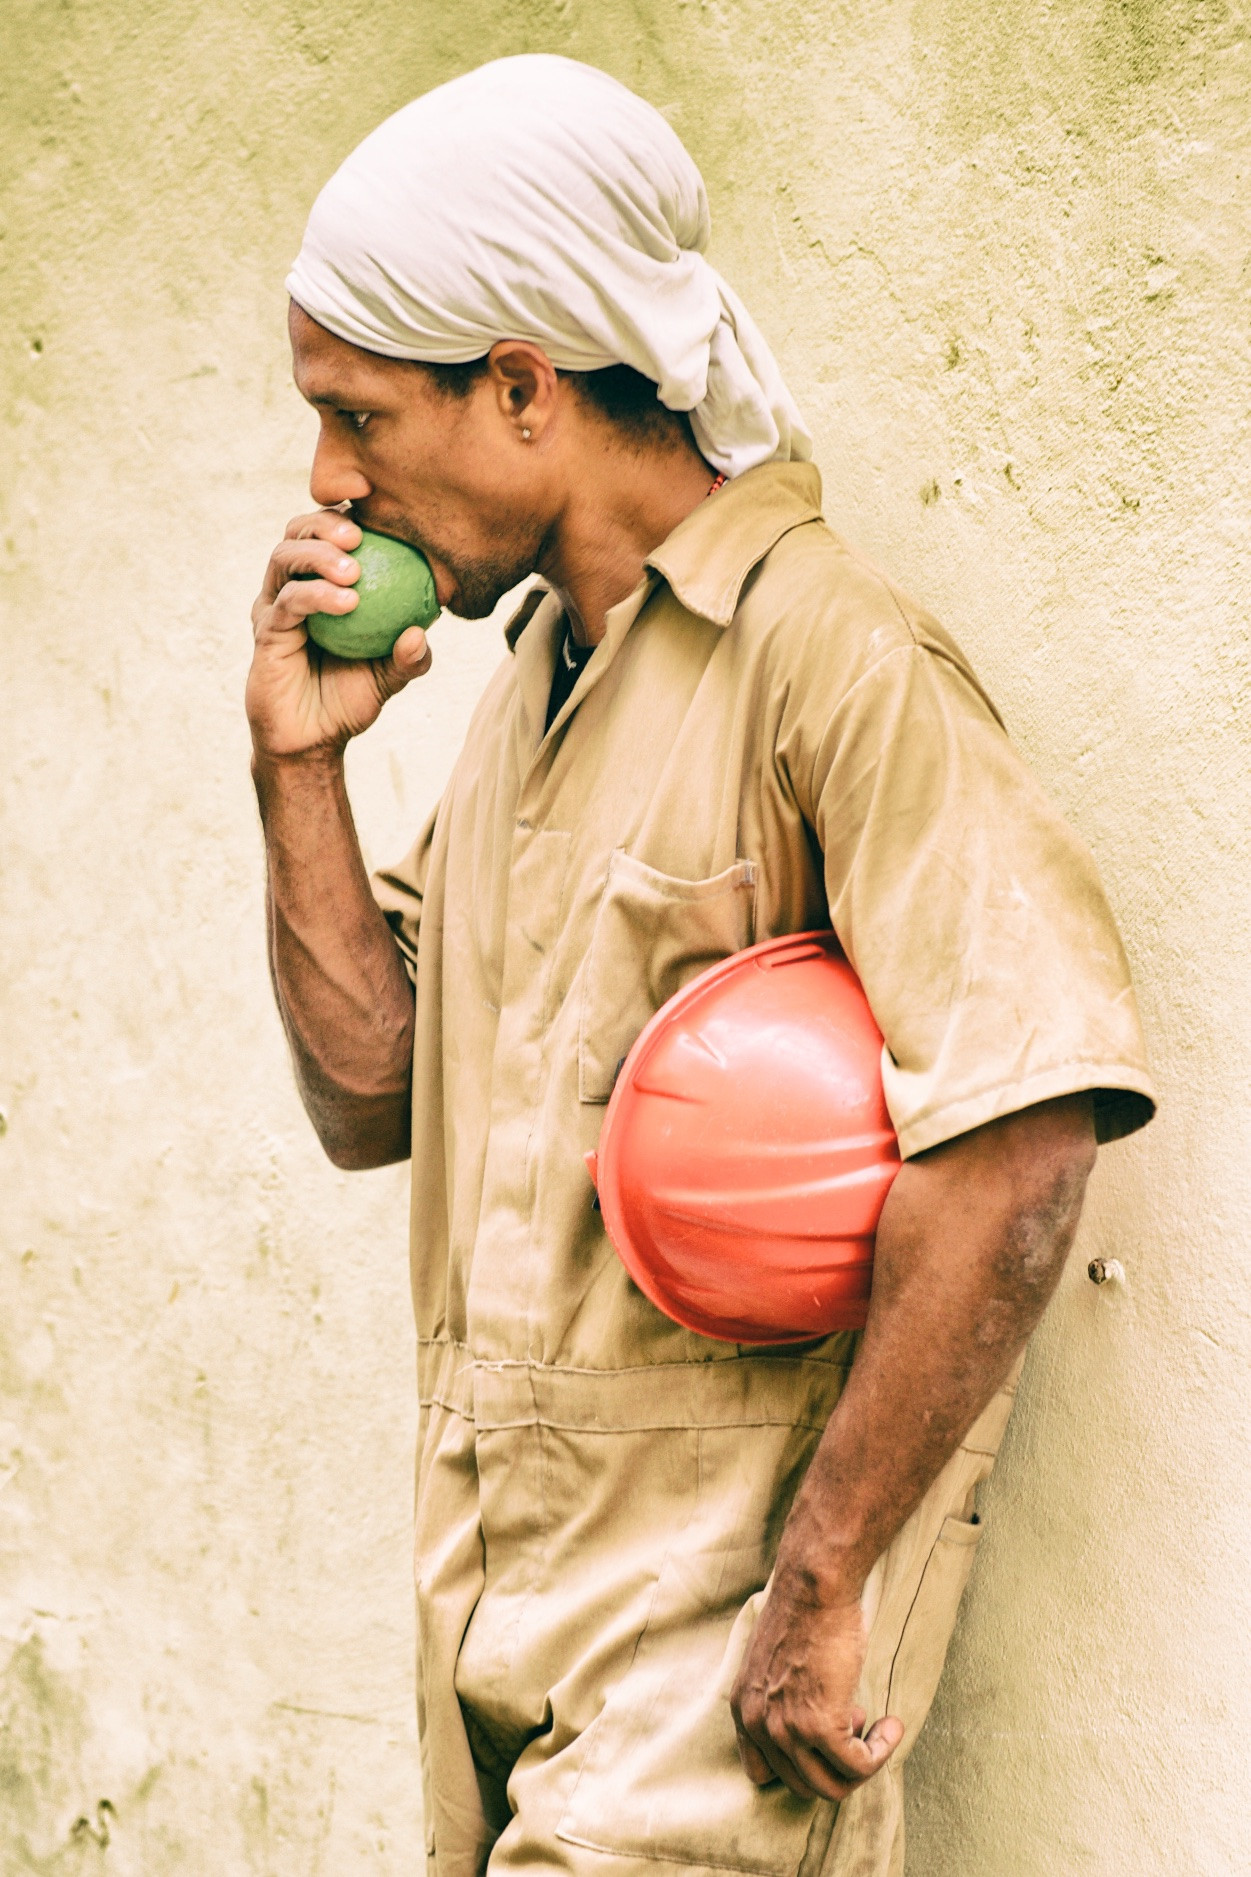 Construction worker eating a green apple